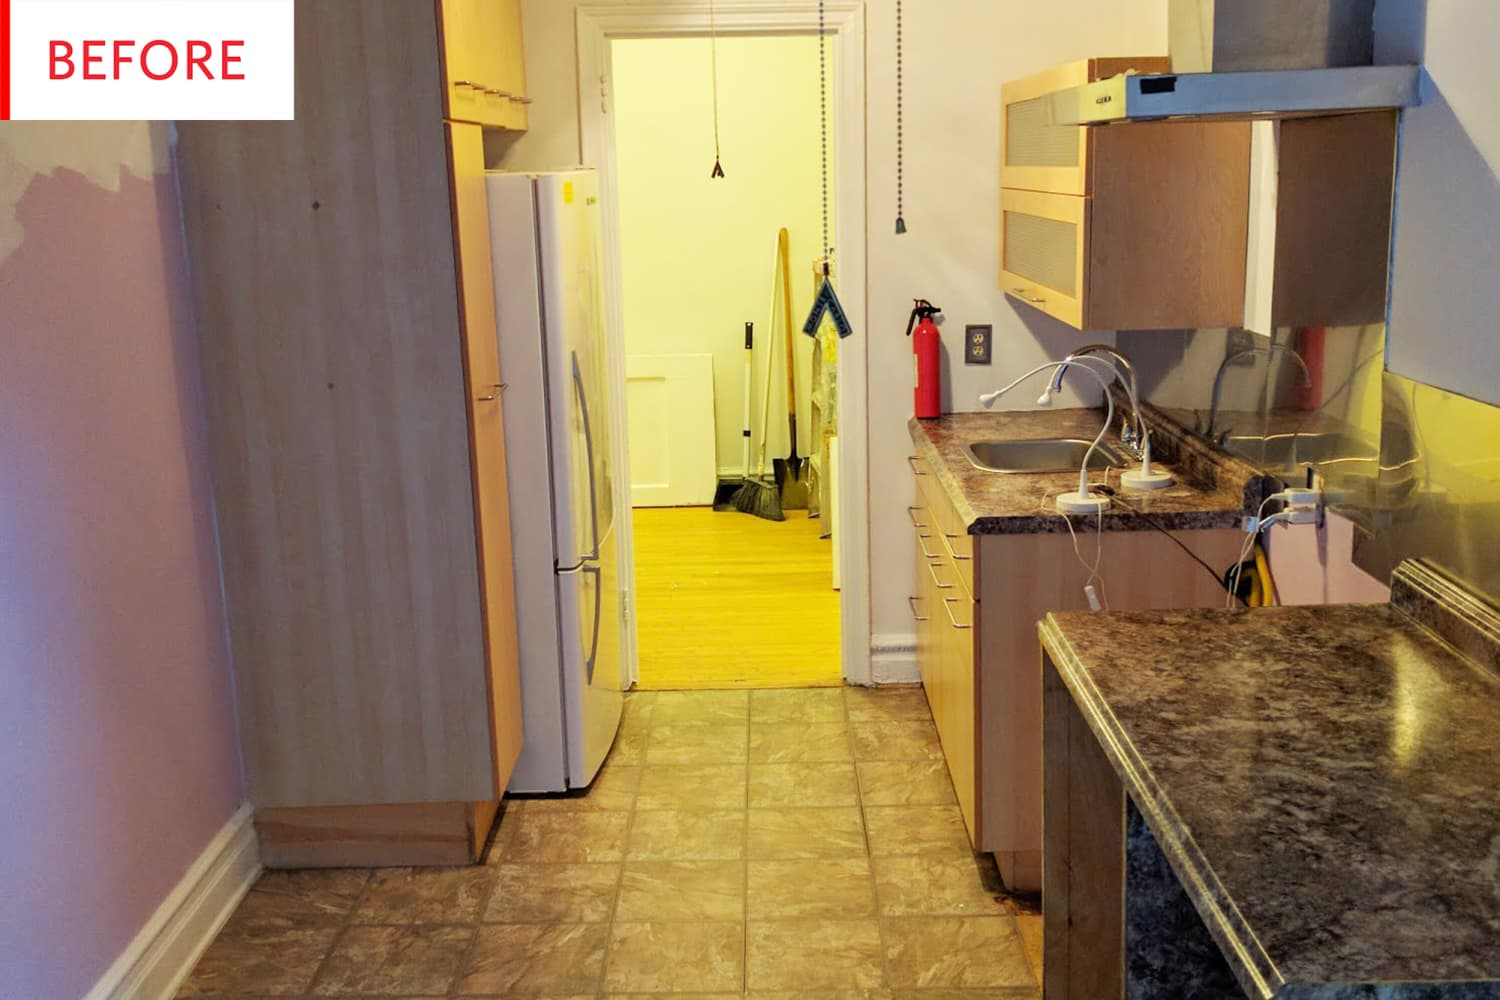 Before & After: This Renovated Kitchen Is Smaller, Yet Way Better than the Original